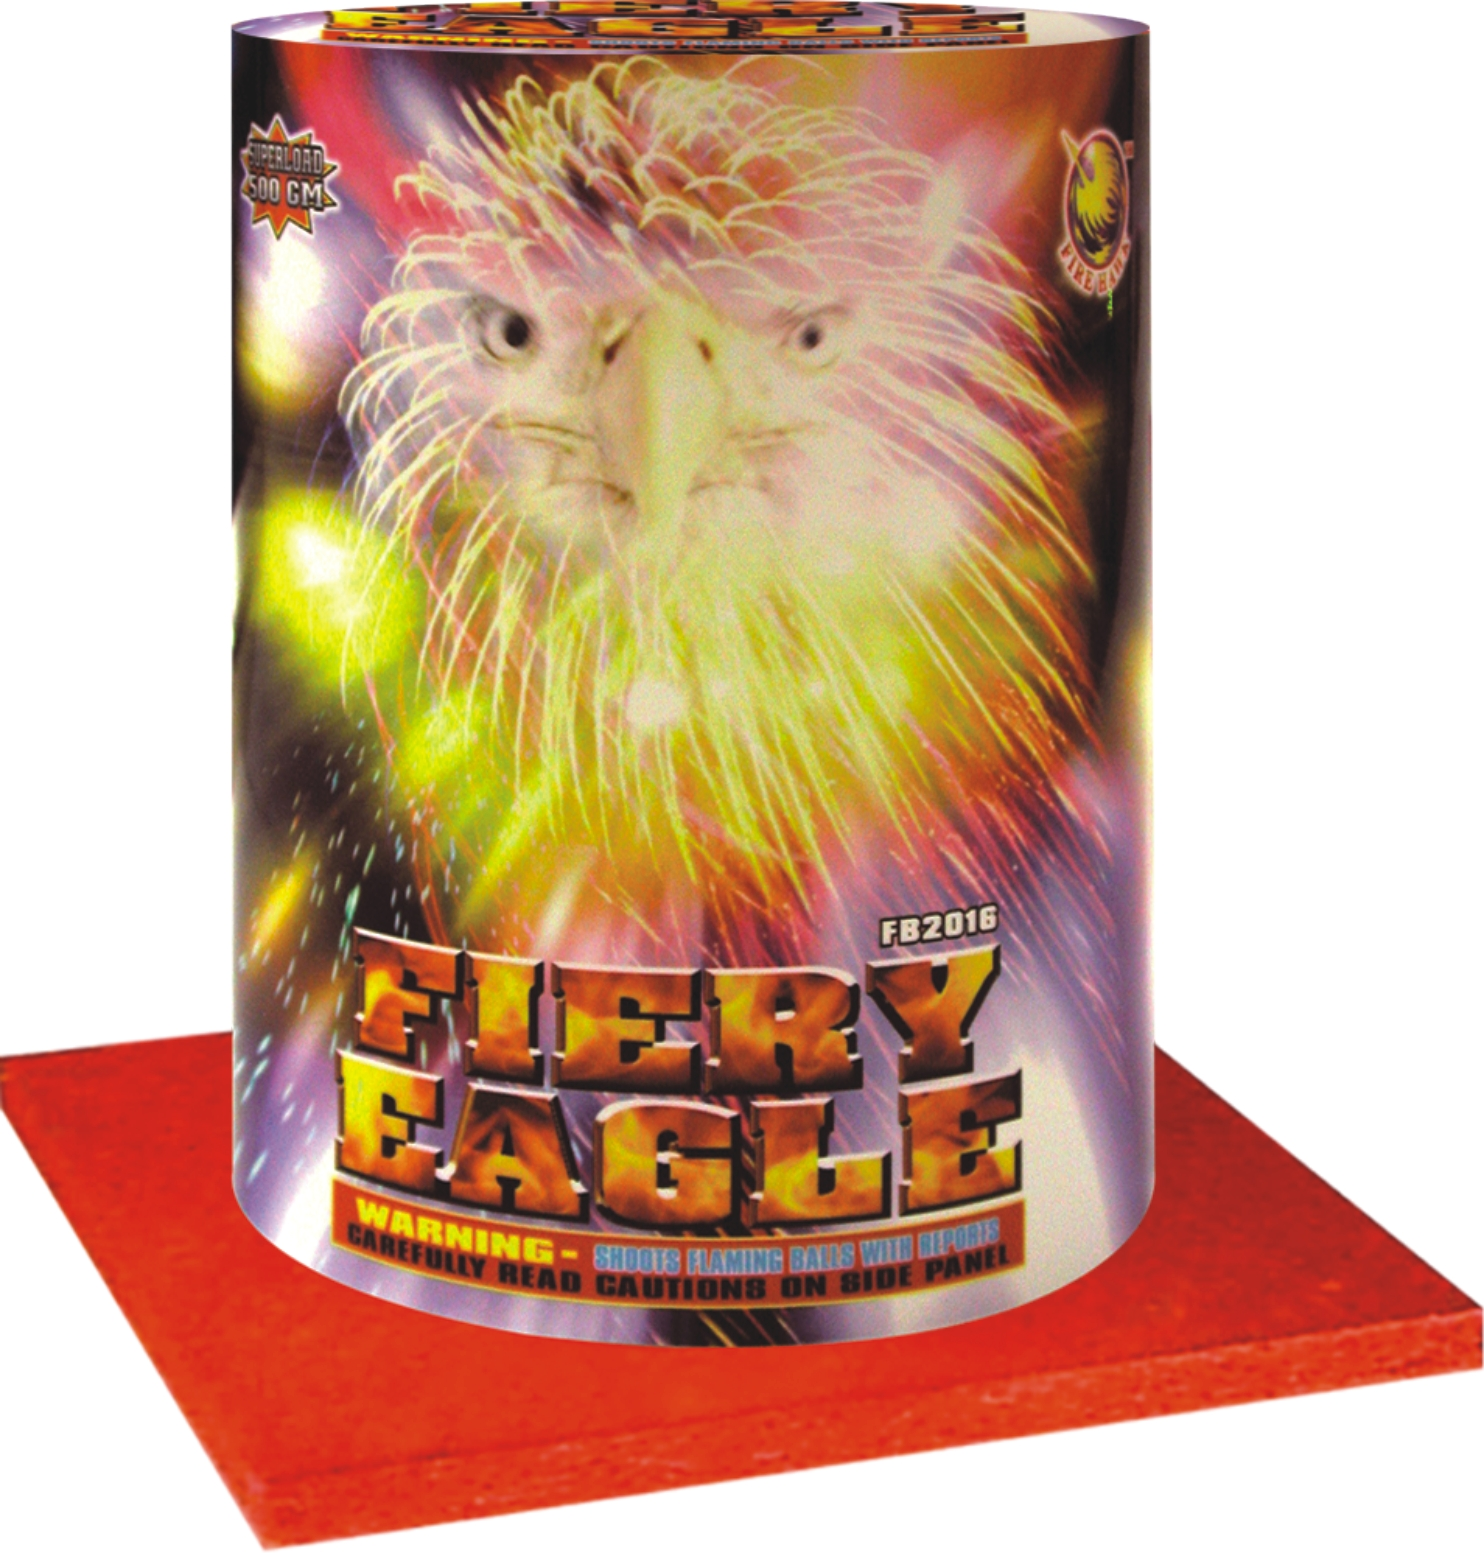 FB2016 Fiery Eagle